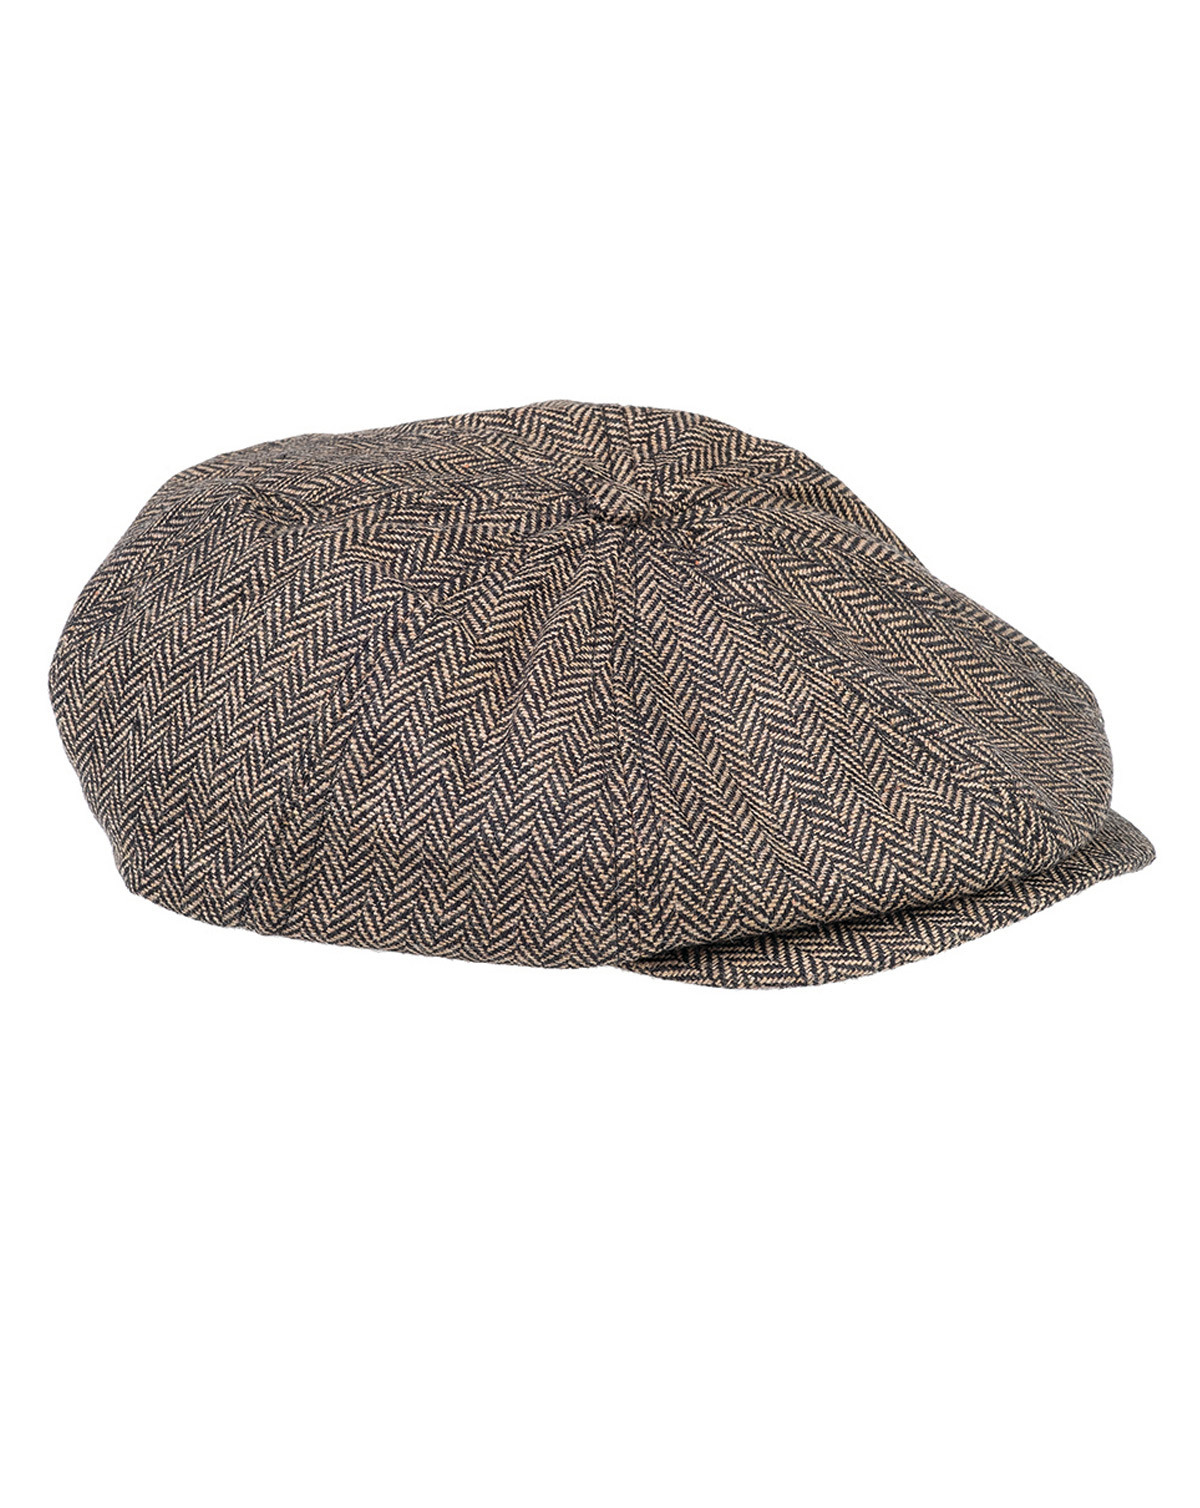 Image of   Dickies Tucson Flat Cap (Brun, One Size)